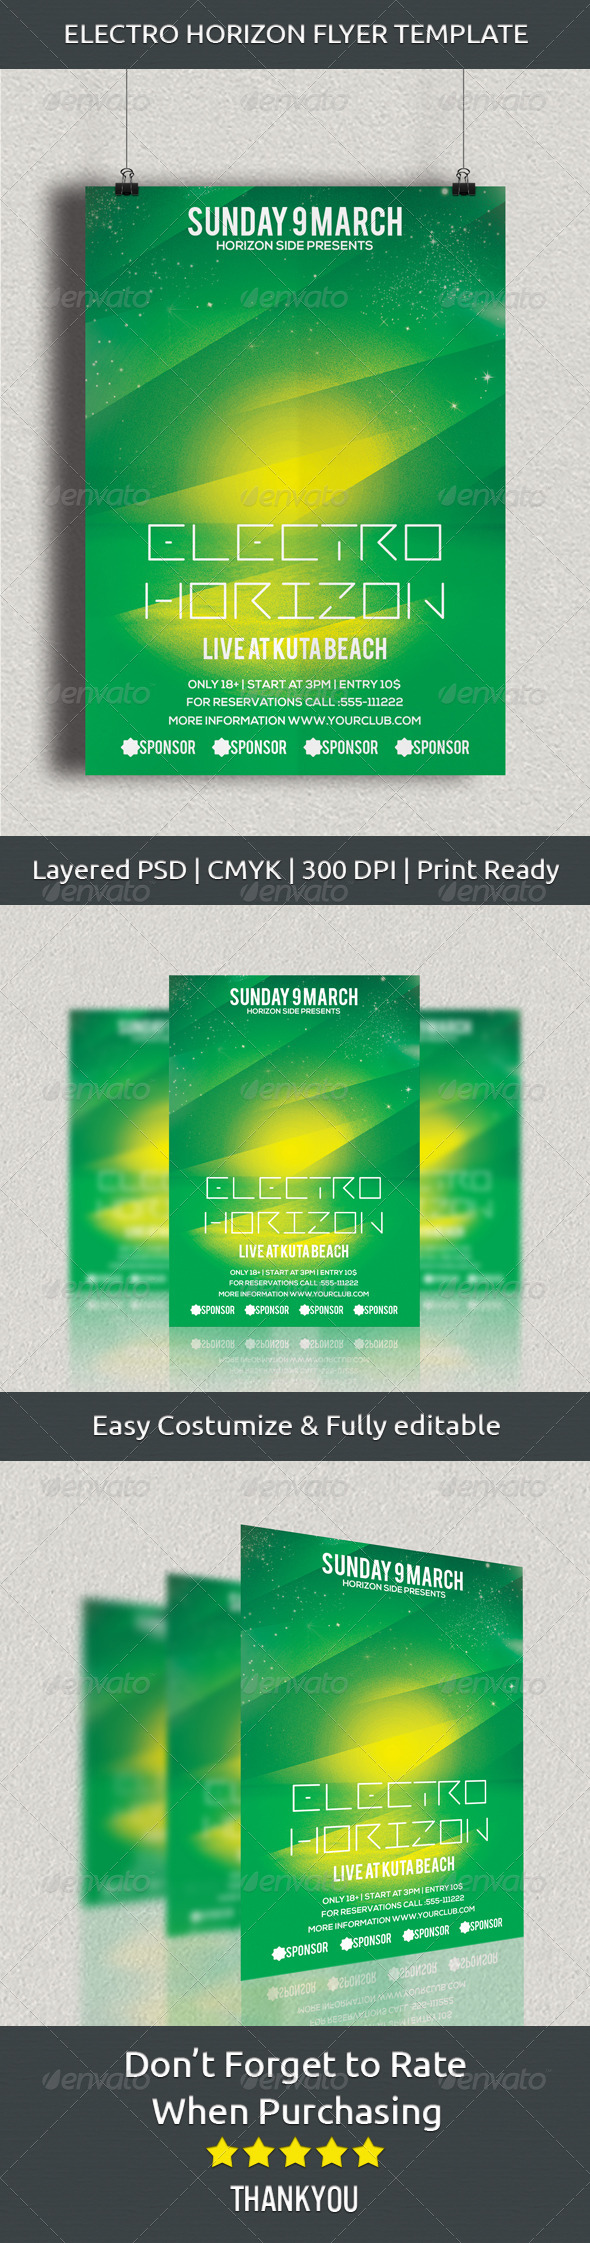 Electro Horizon Flyer Template - Clubs & Parties Events